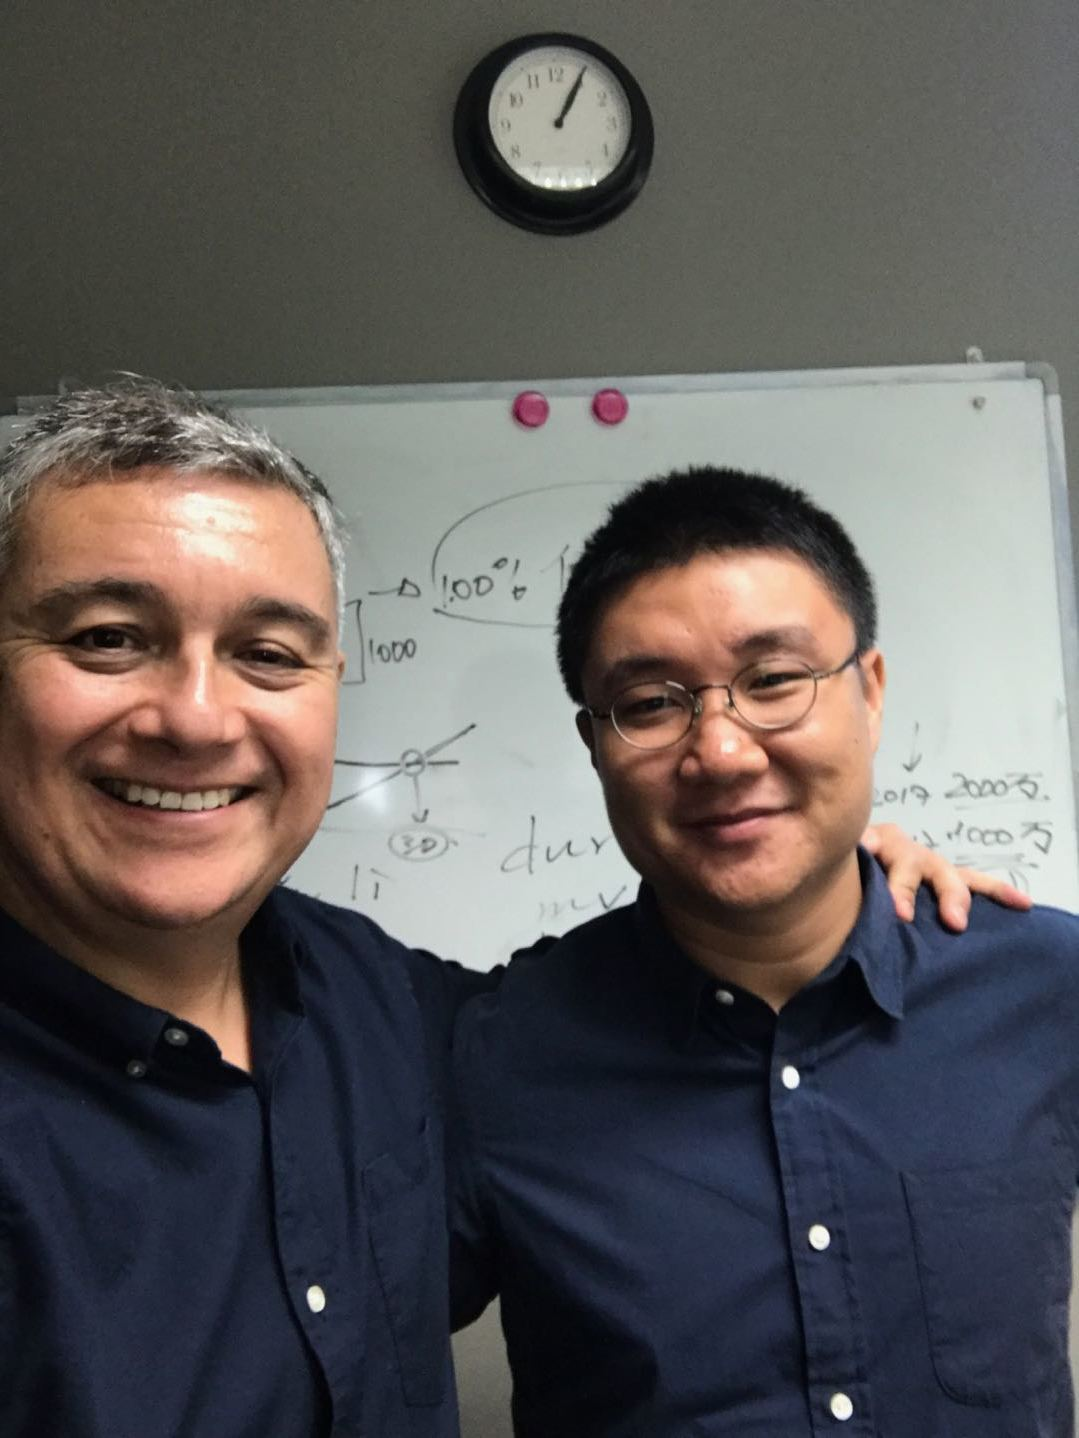 Teacher Timothy Wang with His Student Alberto Duran